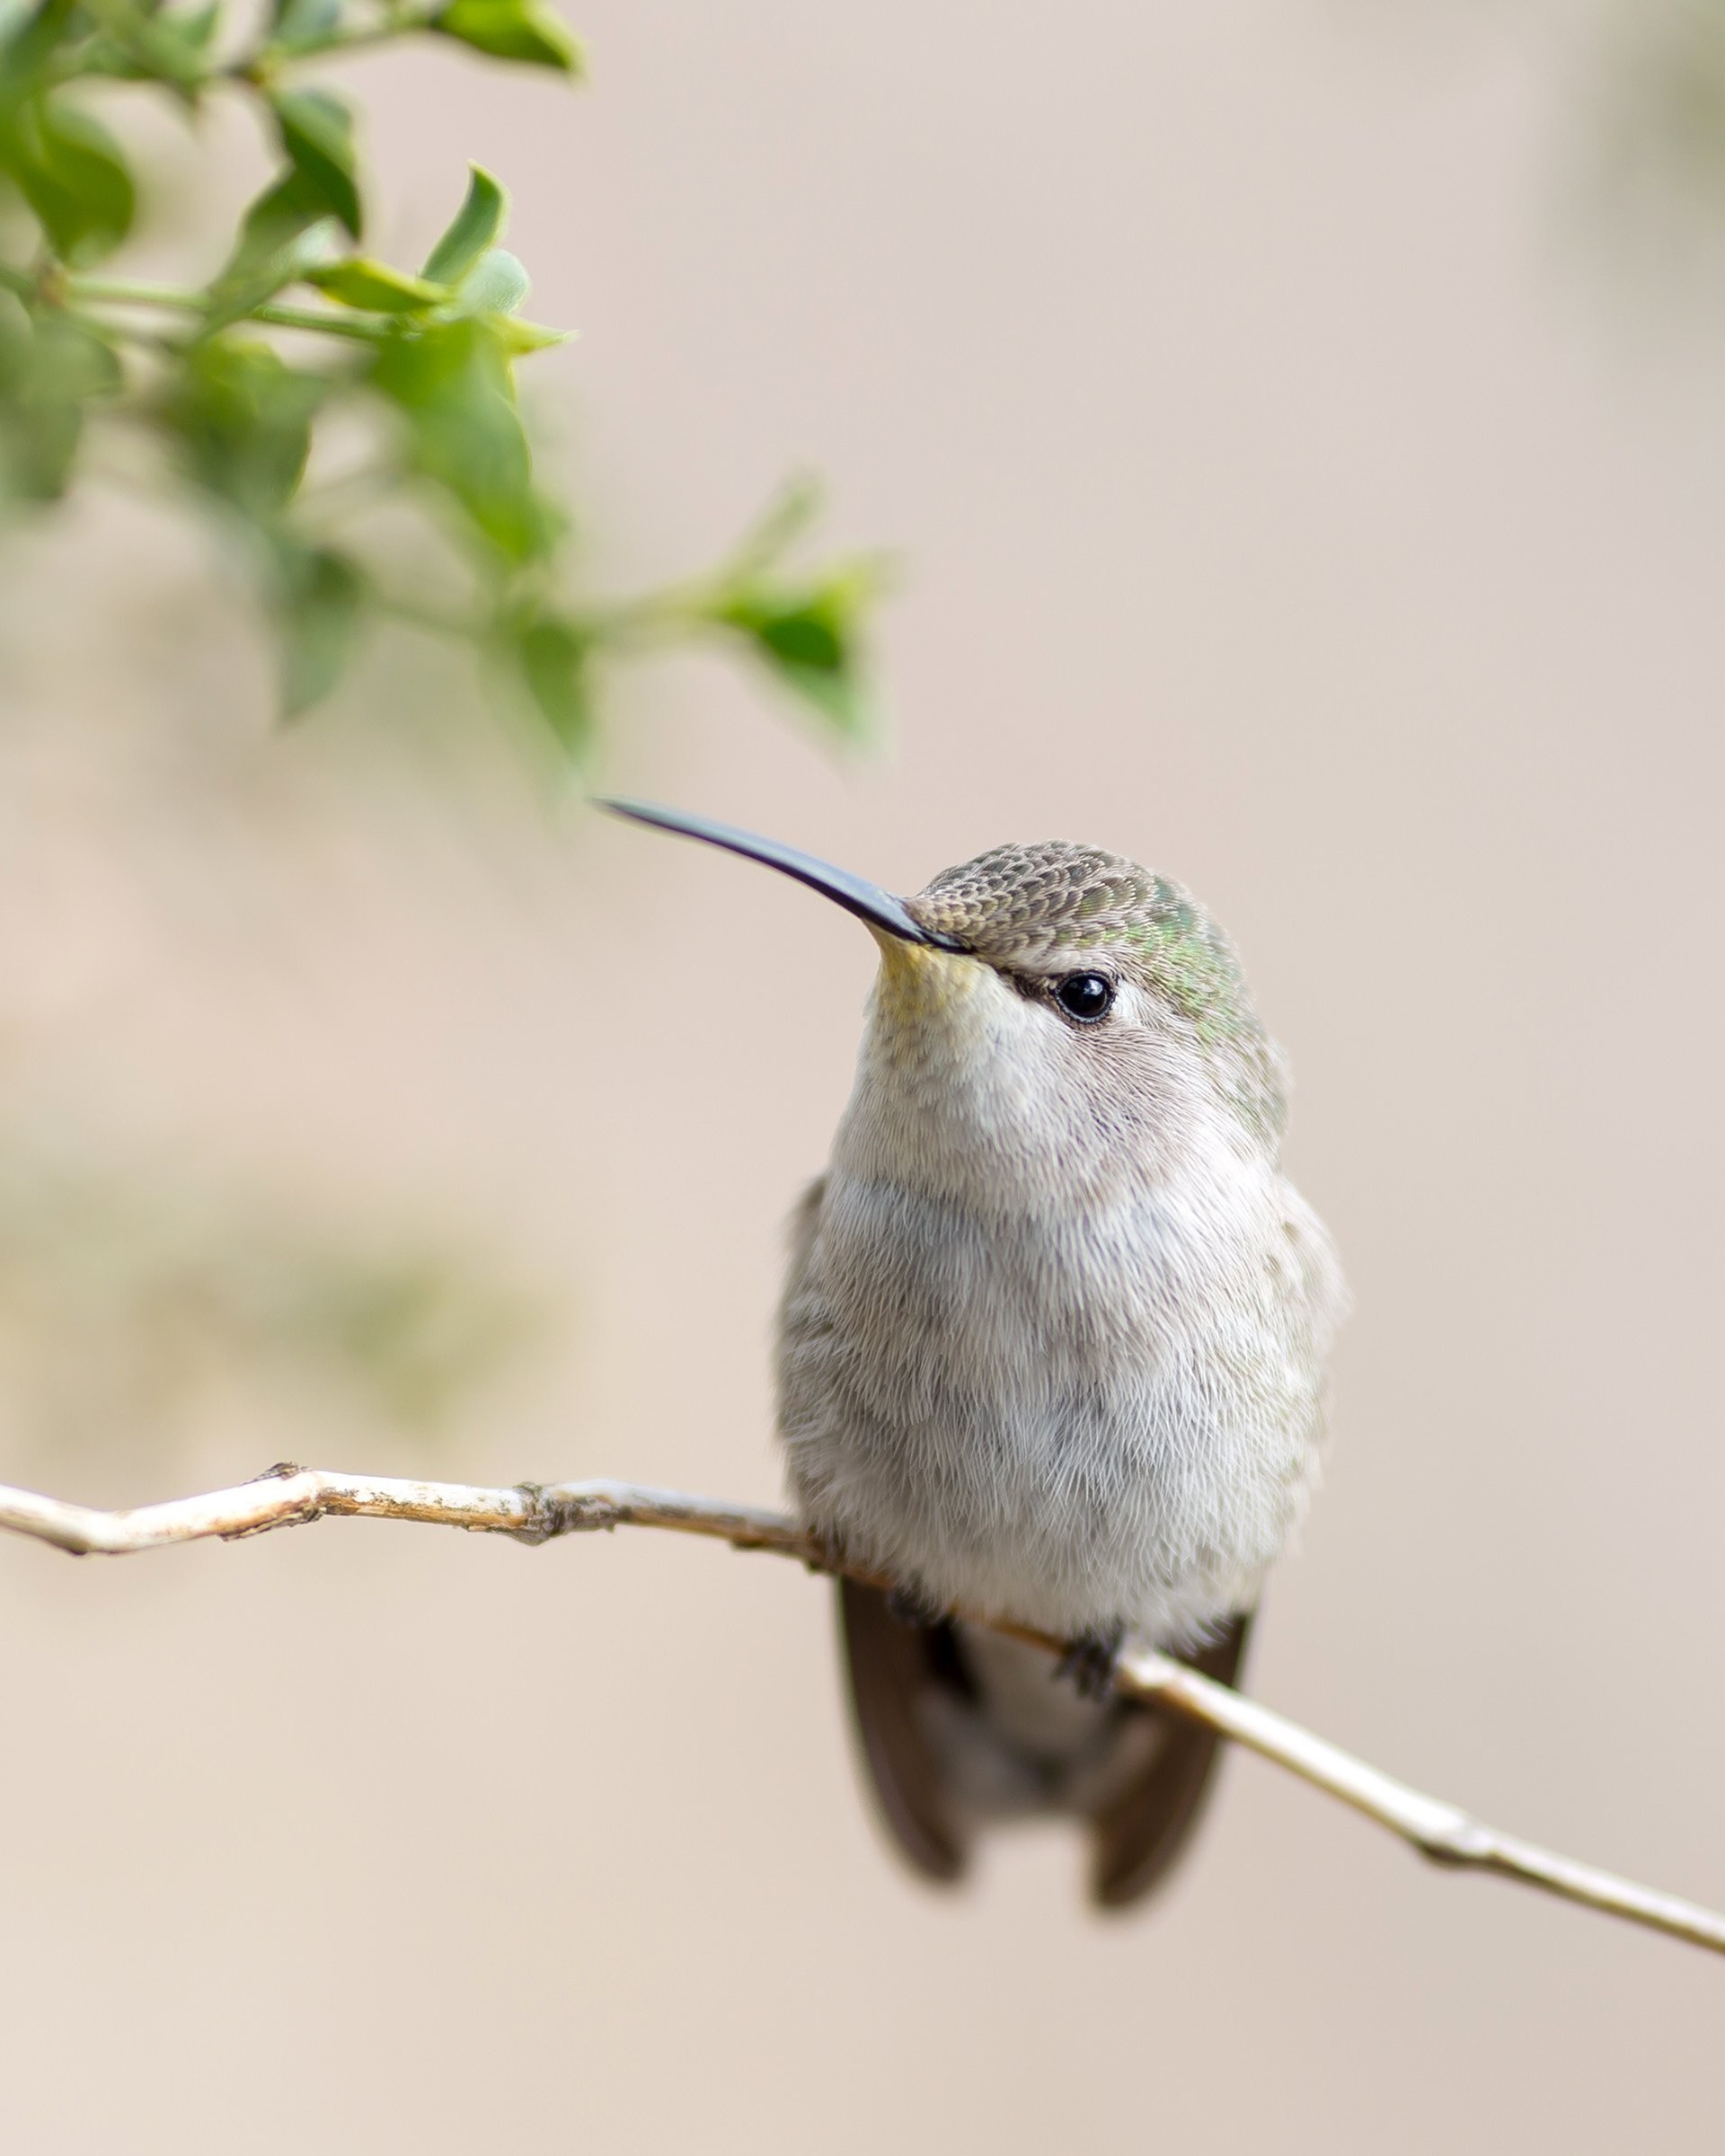 Posing Hummingbird Wallpaper for Google Nexus 7